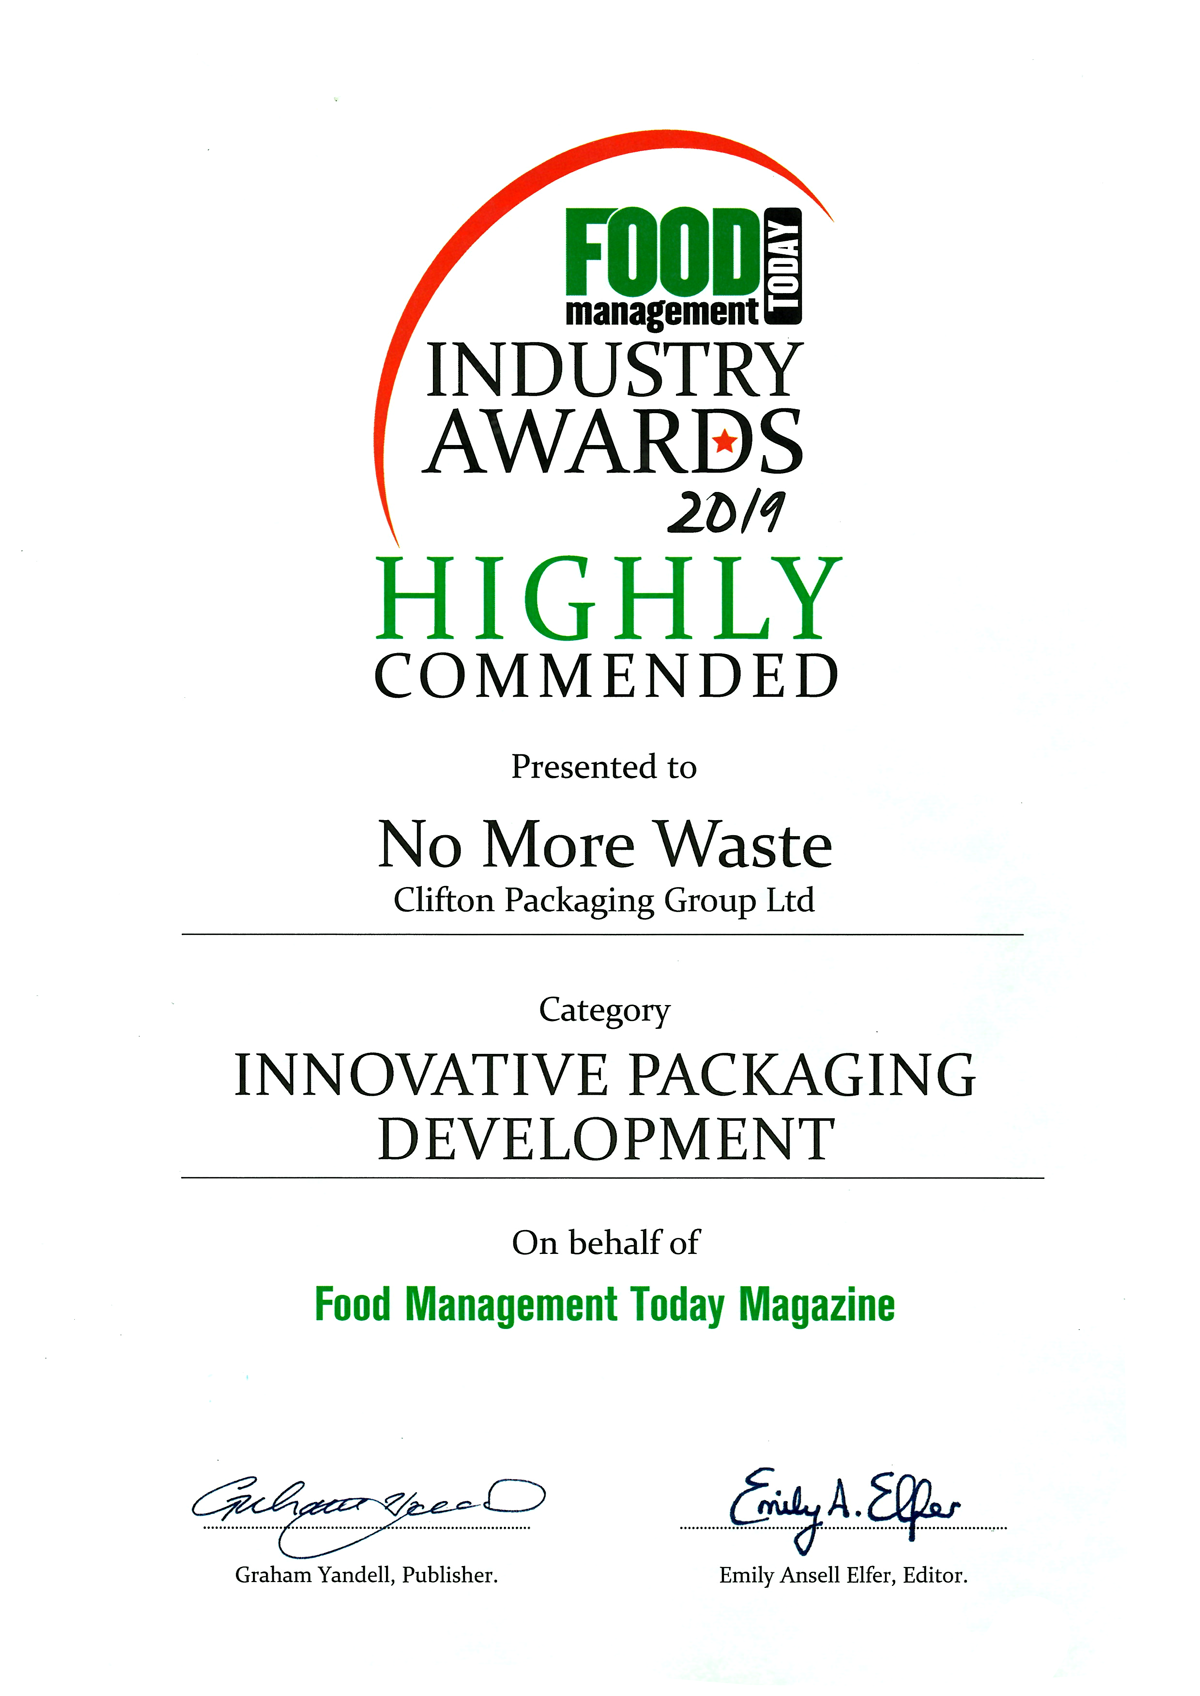 Food Industry Awards 2019 Highly Commended - No More Waste